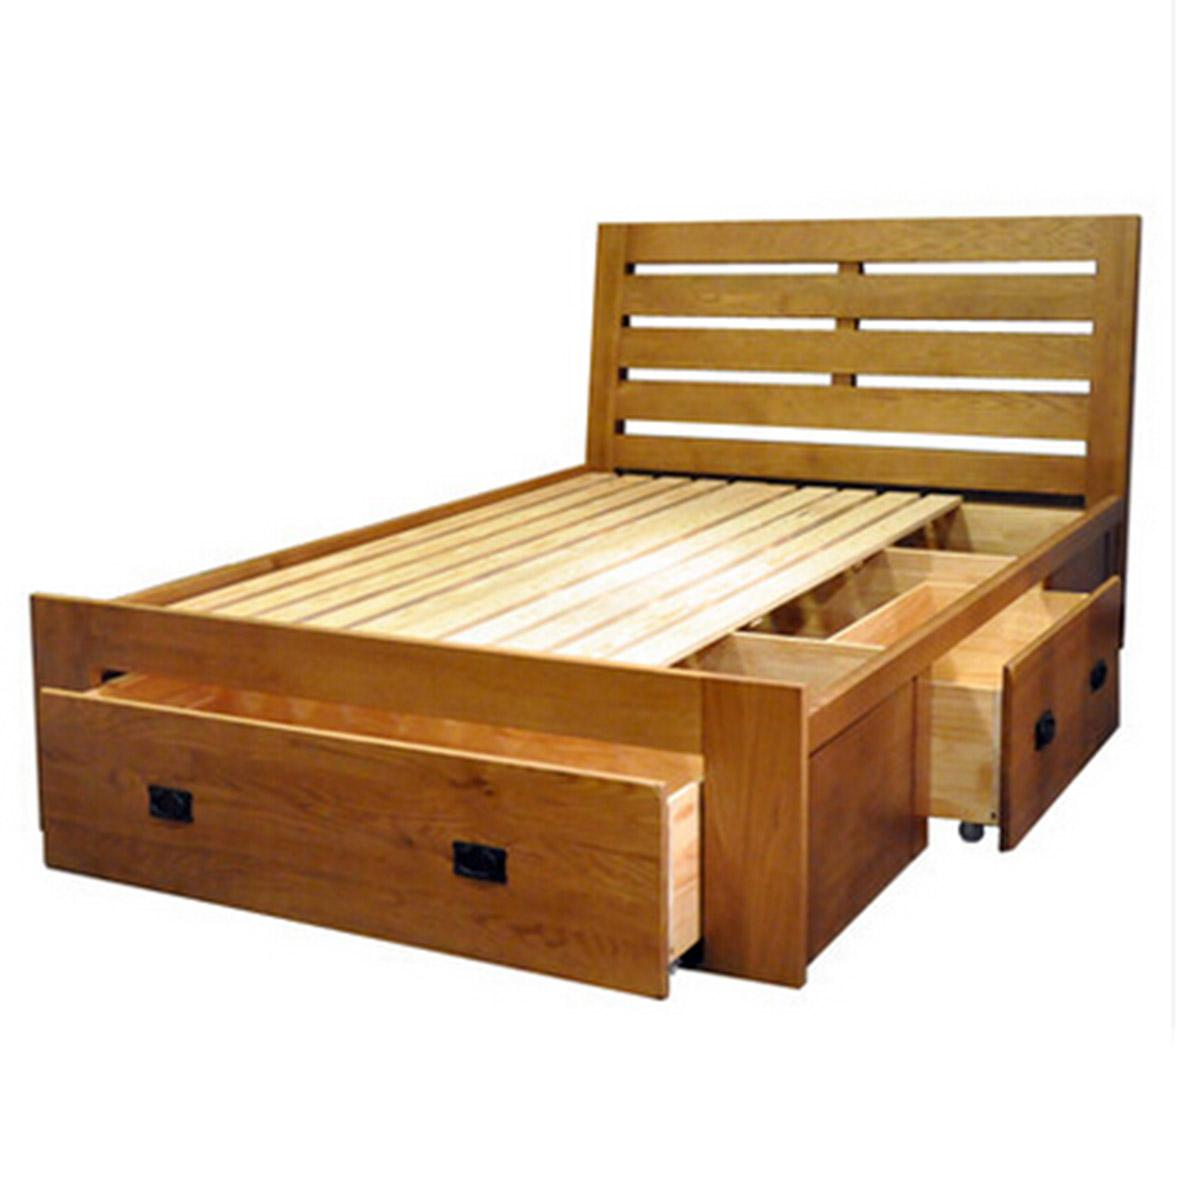 2017 huayi full solid wood furniture white oak bed box bed 1 5m 1 8m double bed with drawer storage bedroom furniture from wmaot 2412 07 dhgate com